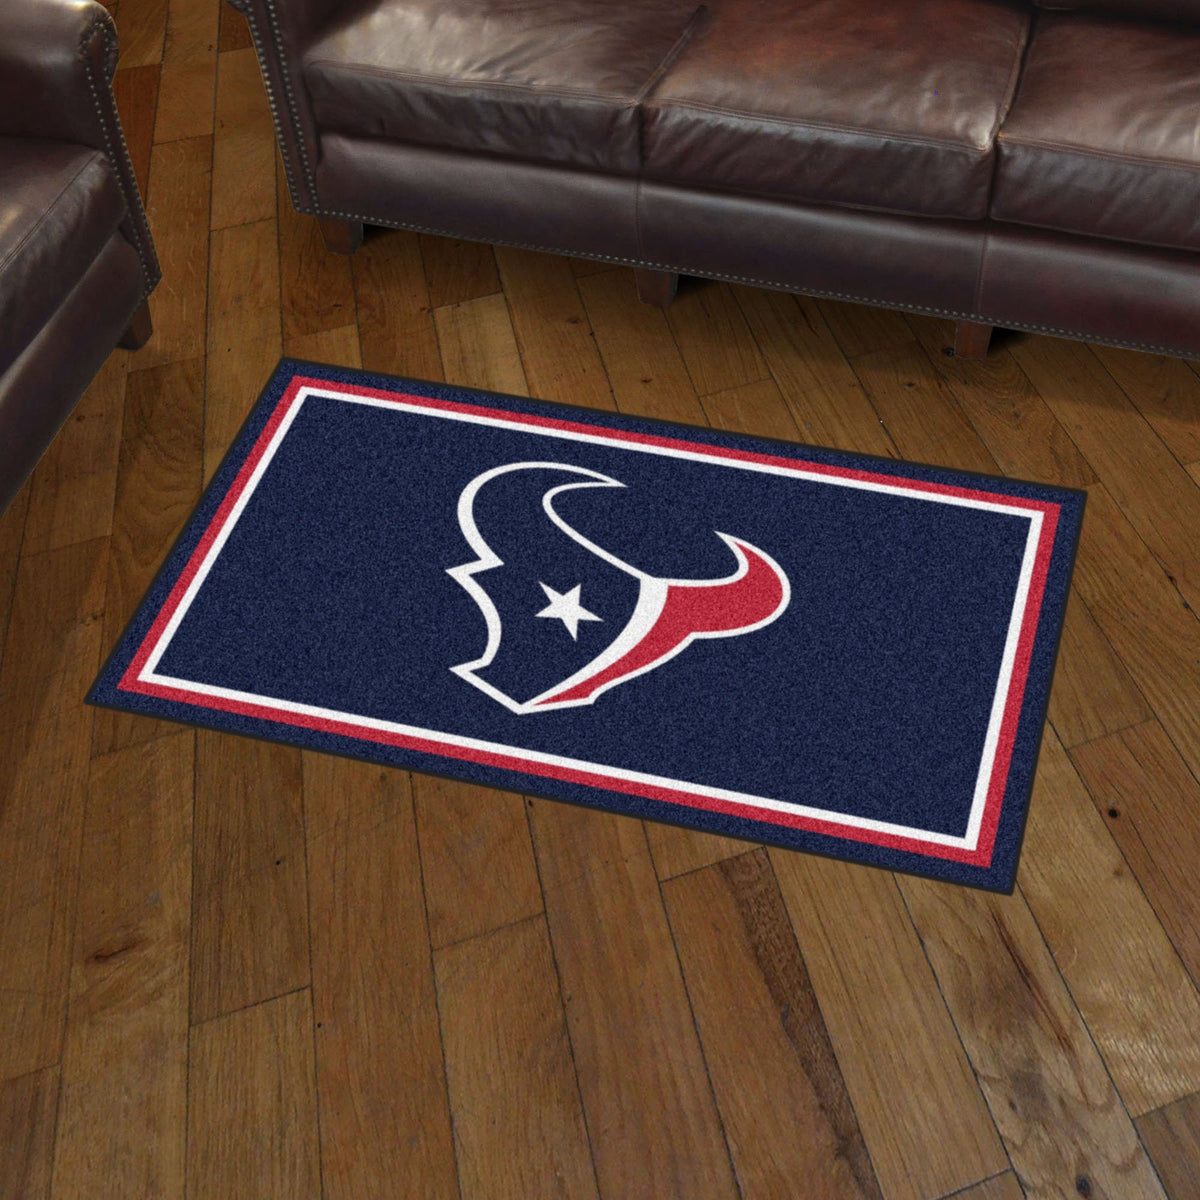 NFL - 3' x 5' Rug NFL Mats, Plush Rugs, 3x5 Rug, NFL, Home Fan Mats Houston Texans